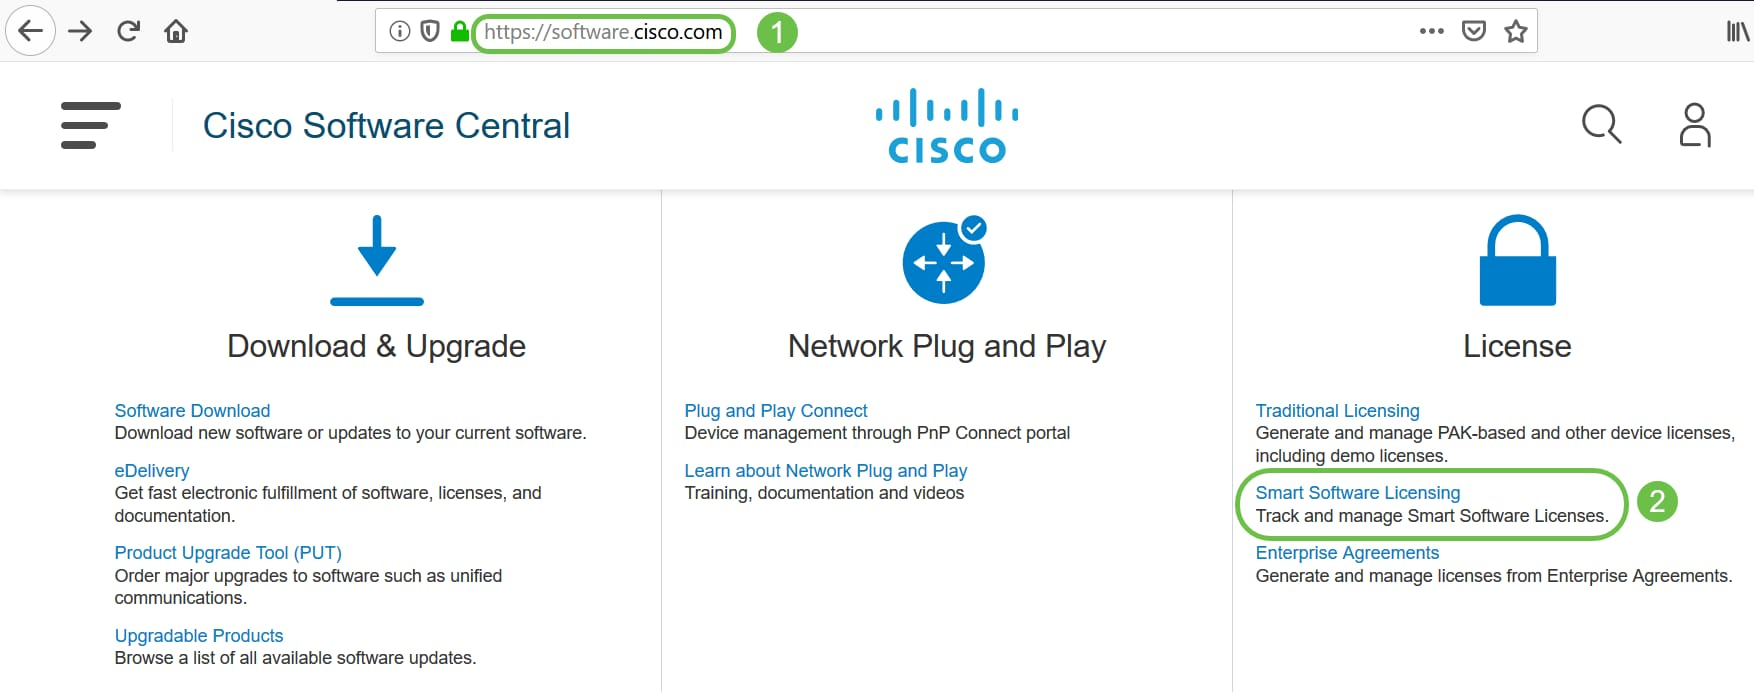 Access Cisco Software and navigate to Smart Software Licensing.